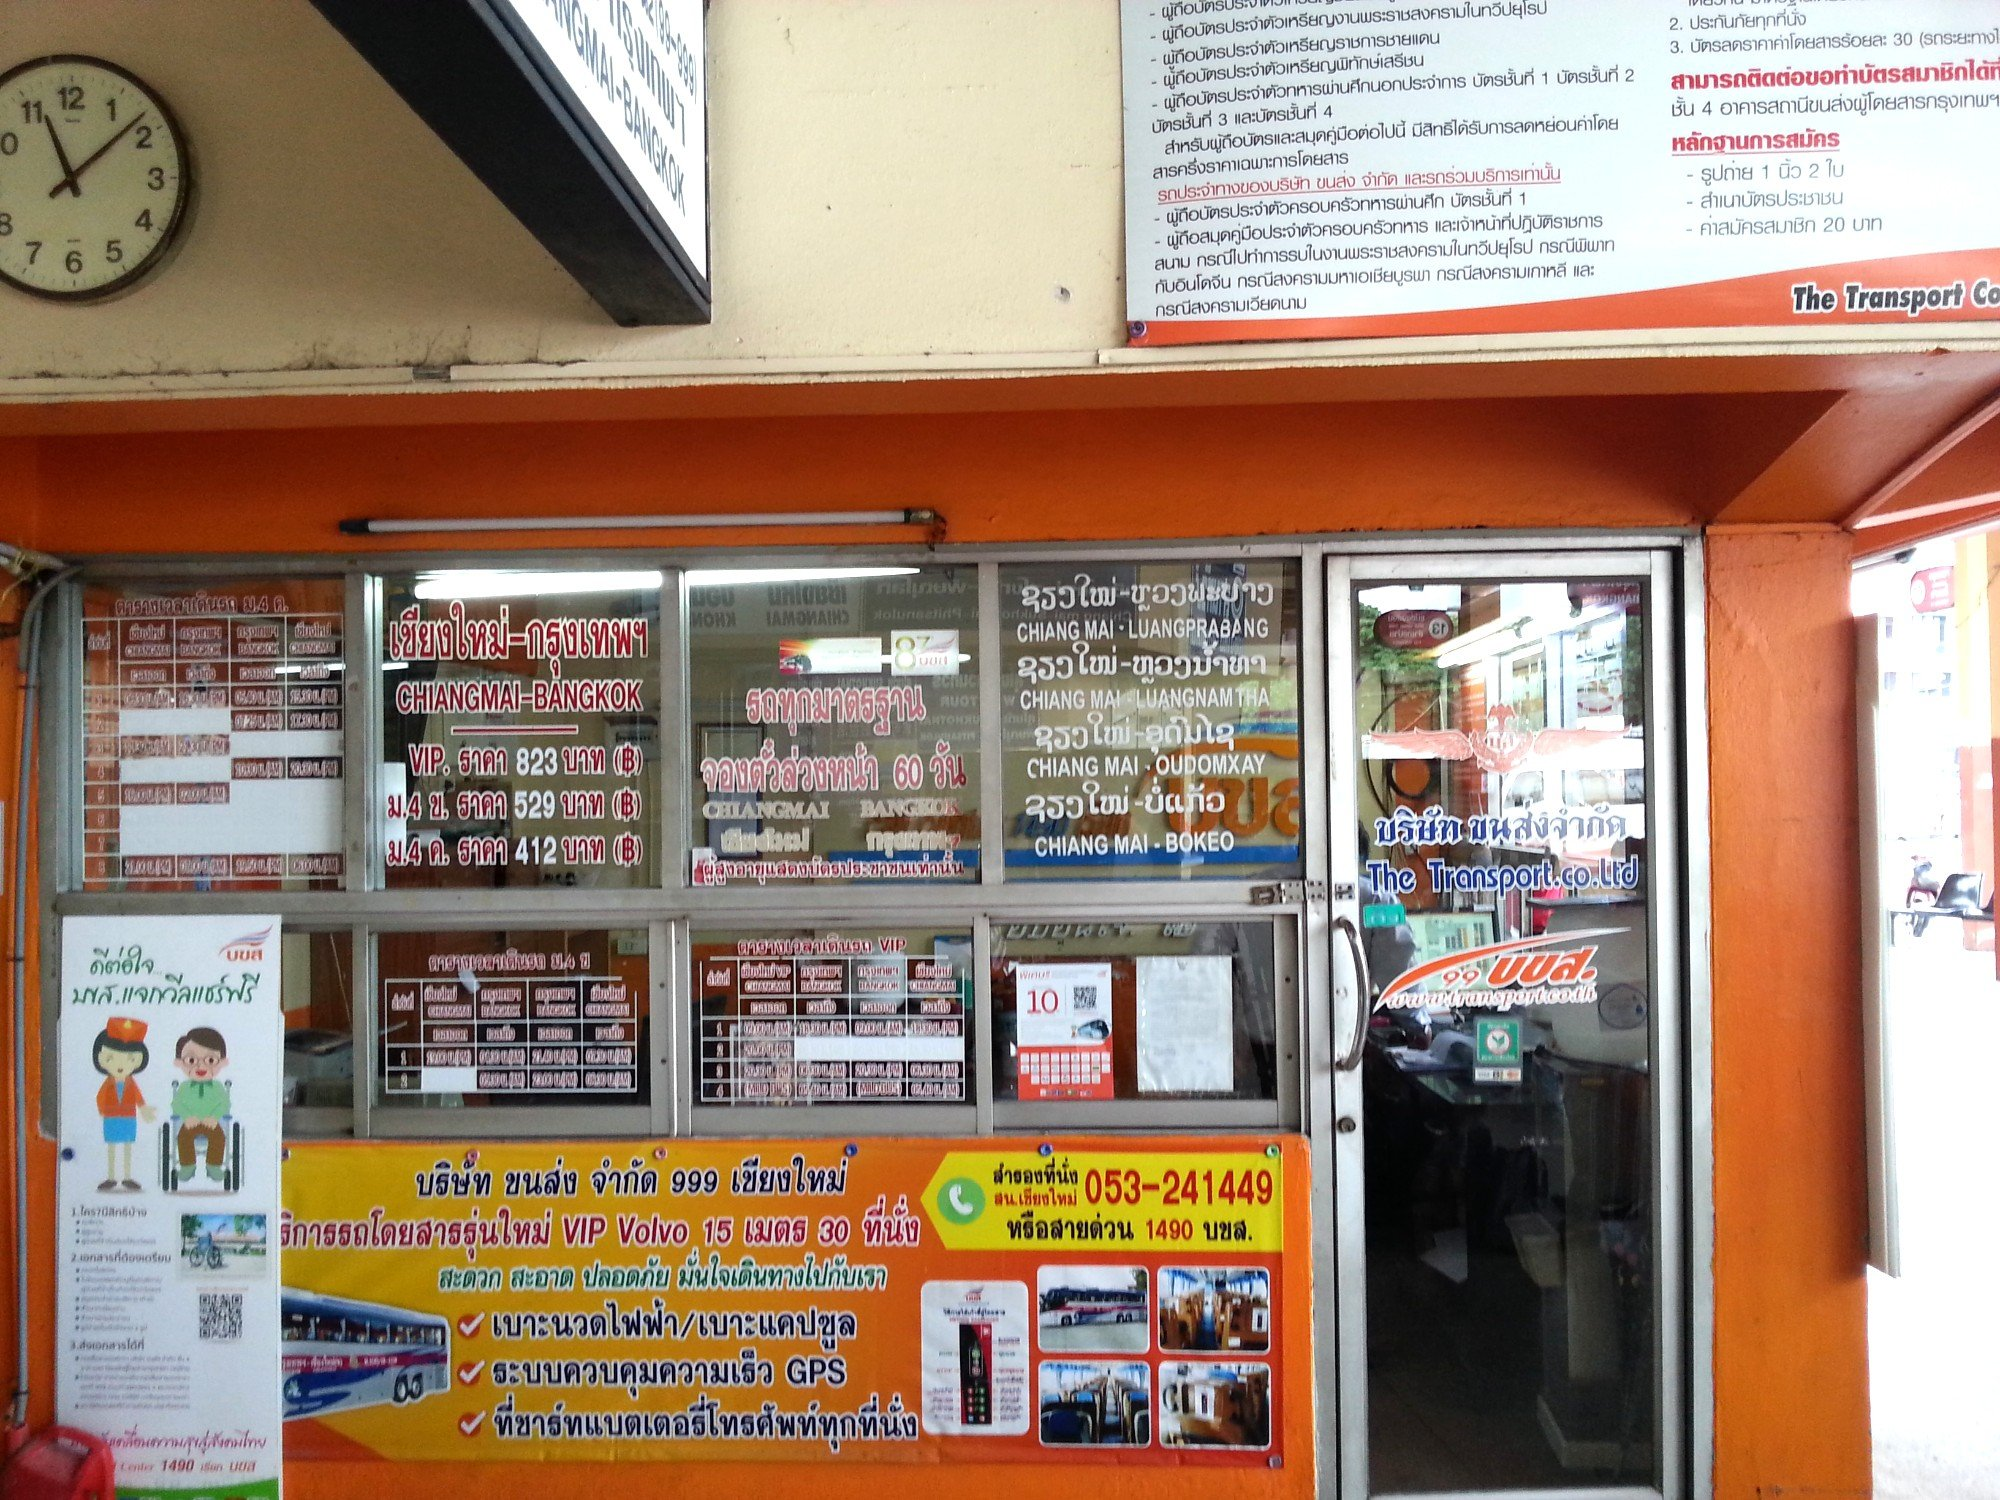 Transport Company booking office at Chiang Mai Bus Terminal 2